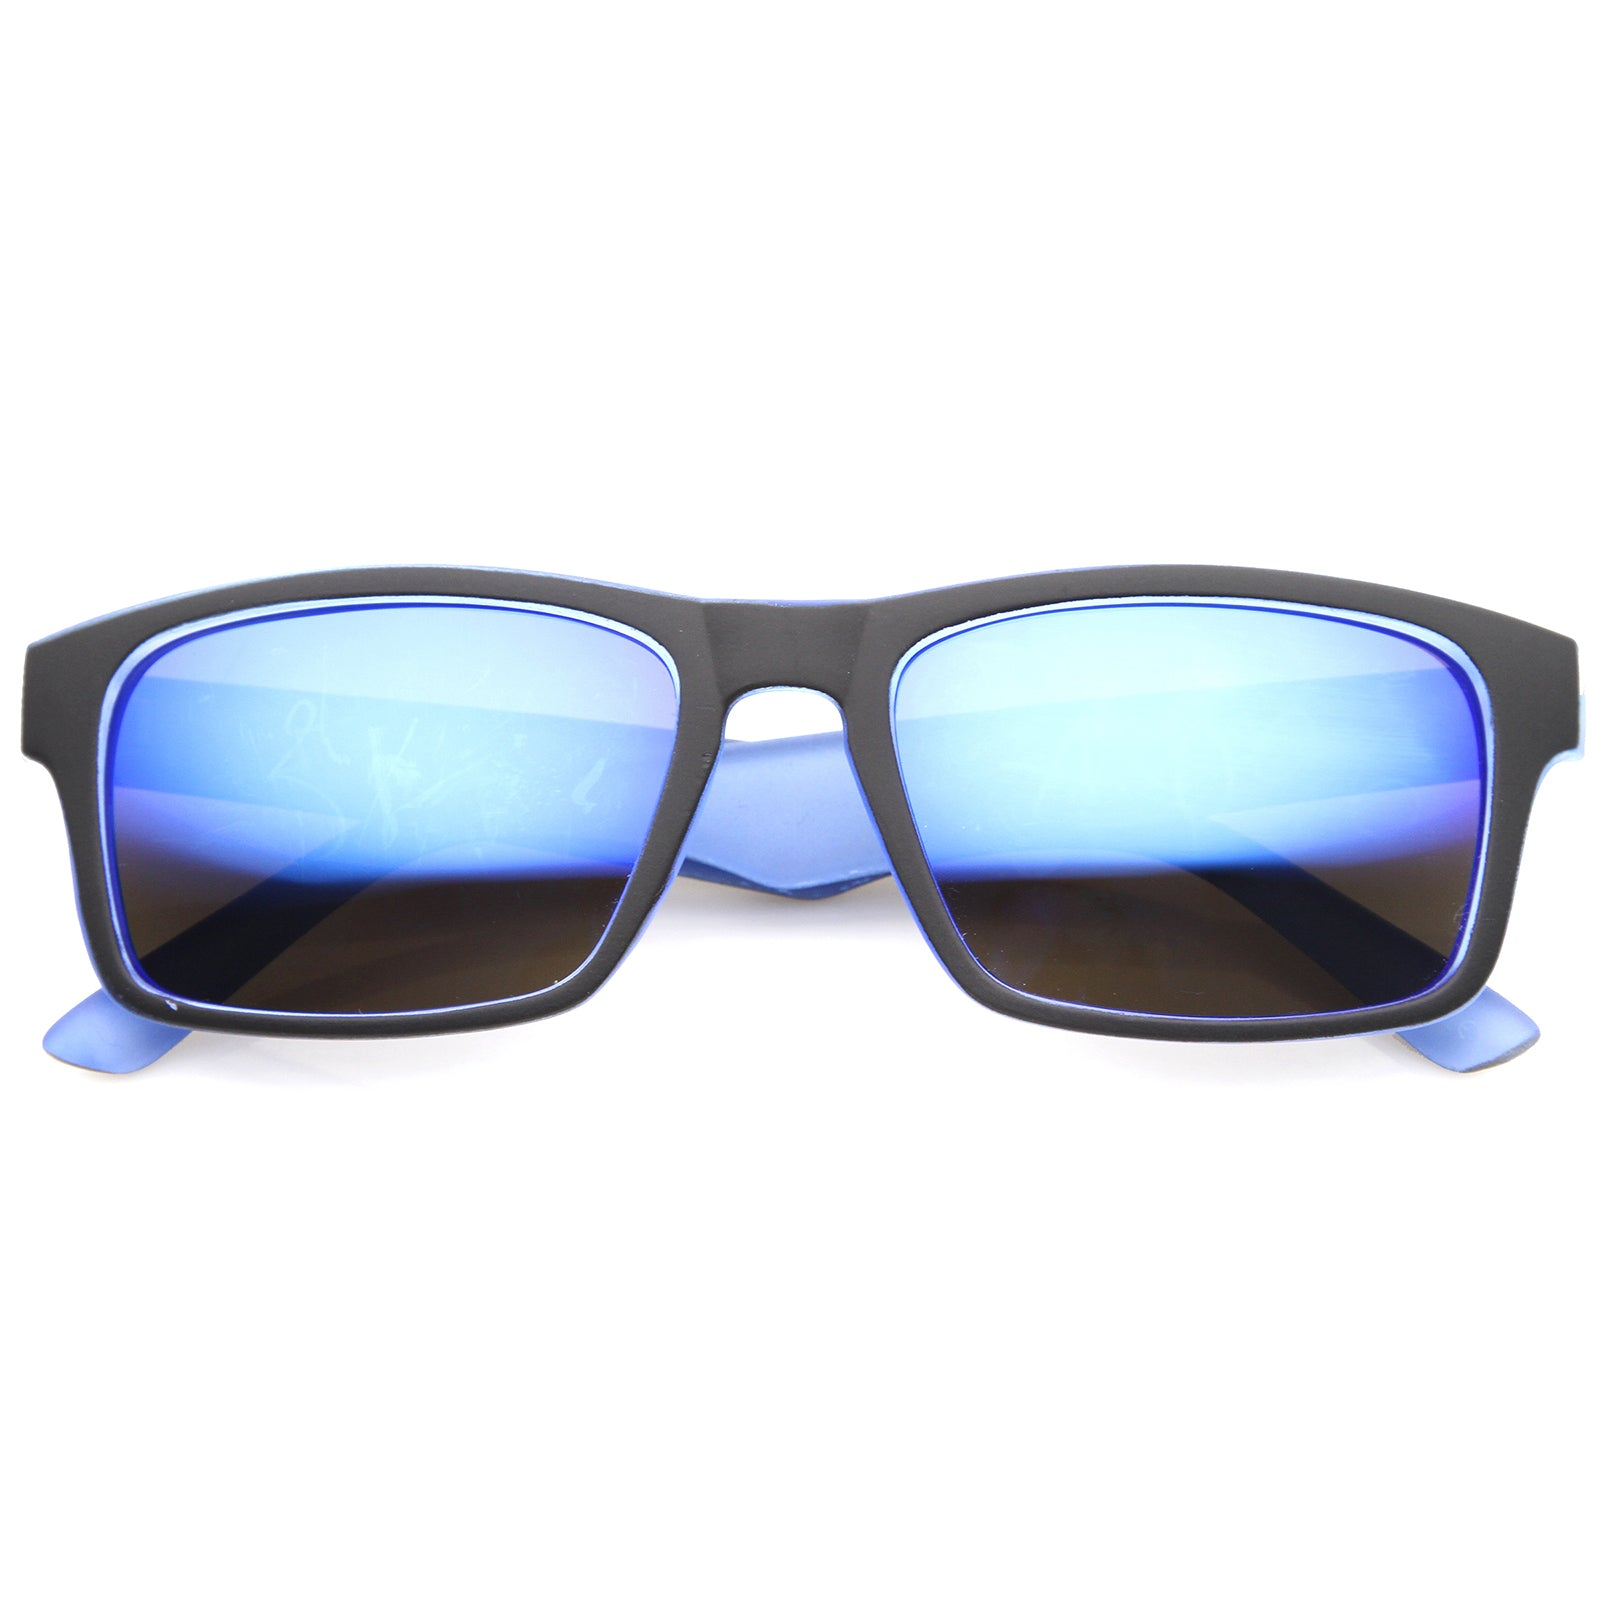 Mens Sport Sunglasses With UV400 Protected Mirrored Lens - sunglass.la - 5